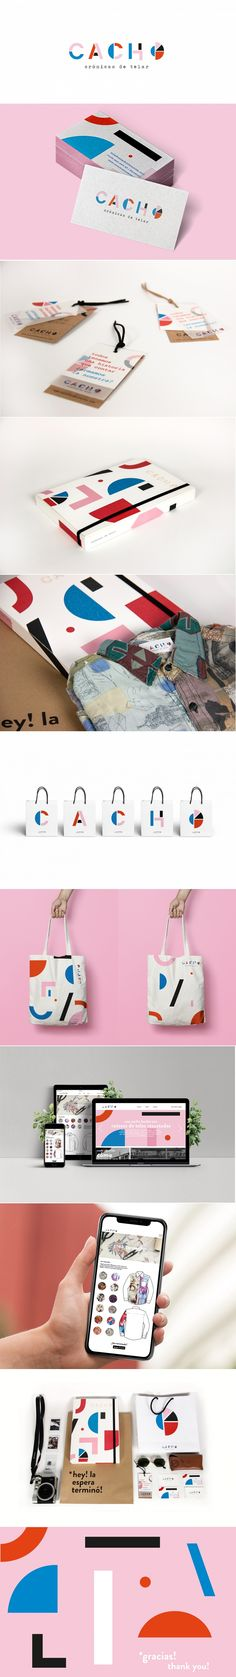 Cacho fashion brand by Florence Suaya, Julia Artero Aspiroz, and Angeles María Baeck | Fivestar Branding Agency – Design and Branding Agency & Curated Inspiration Gallery #fashion #branding #design #logo #packaging #businesscards #behance #pinterest #dribbble #fivestarbranding